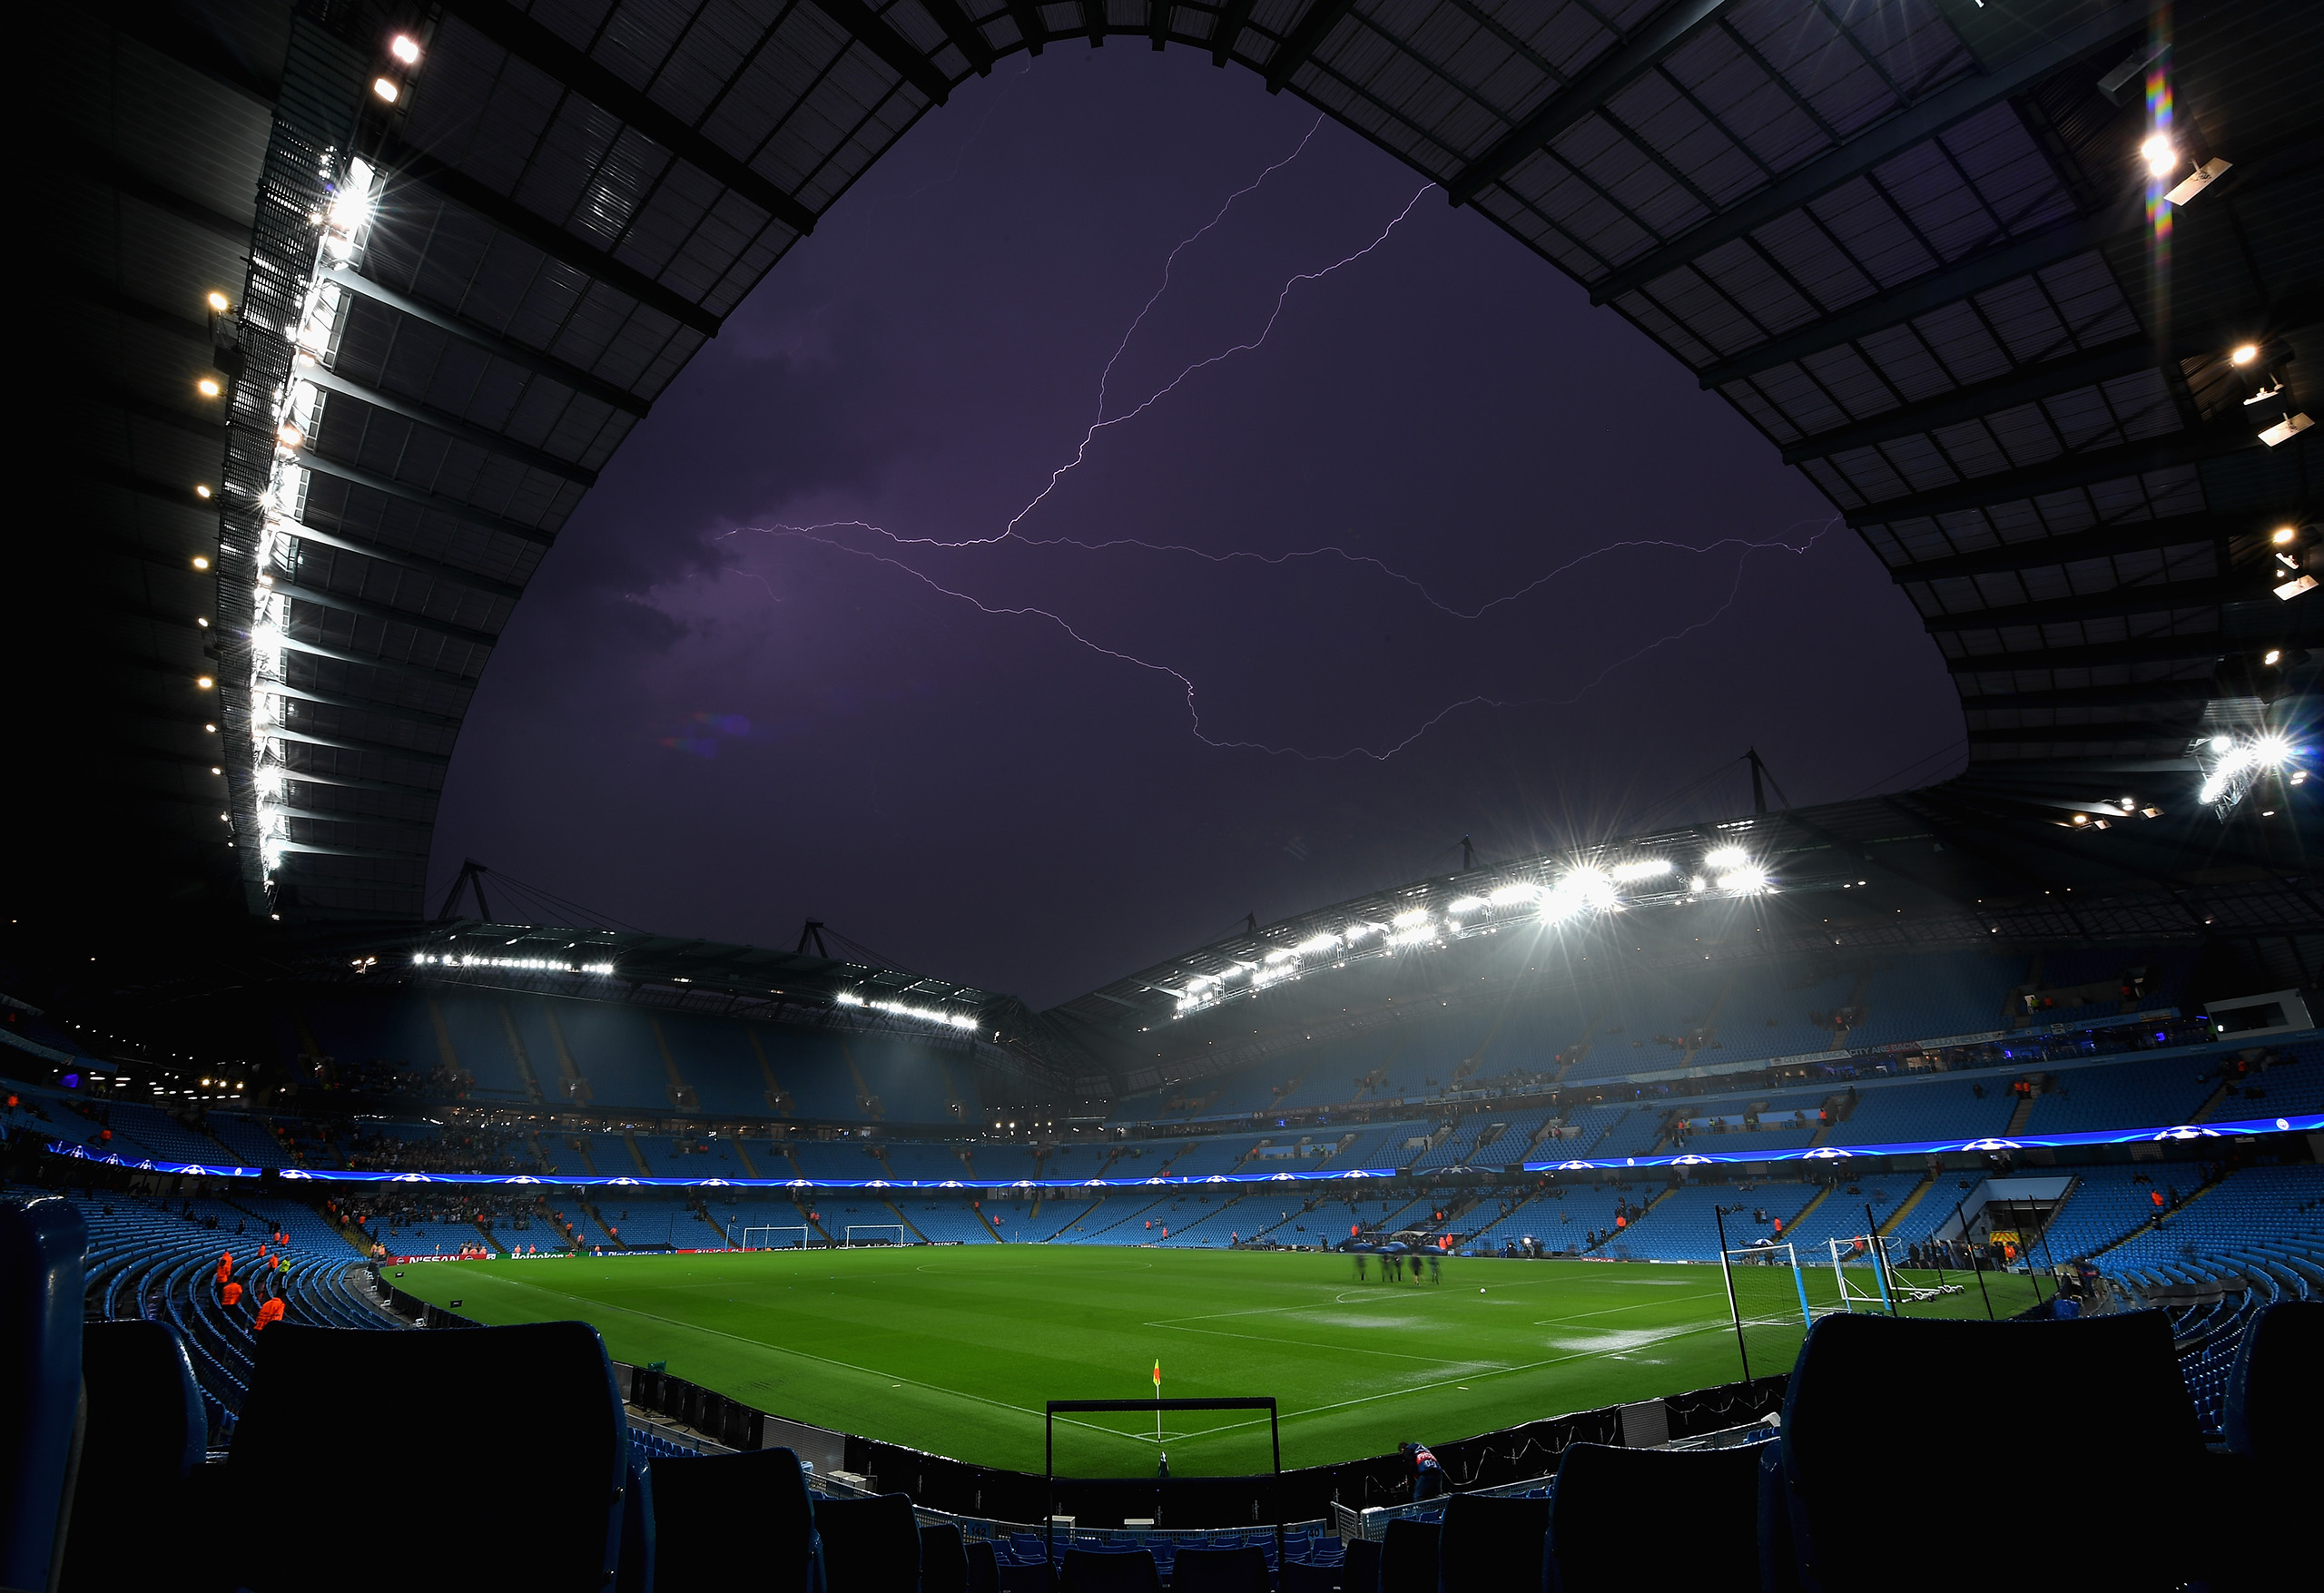 A general view inside the stadium as Lightning strikes following the postponement of the UEFA Champions League Group A match between Manchester City FC and VfL Borussia Moenchengladbach at Etihad Stadium on Sept. 13, 2016 in Manchester, England.